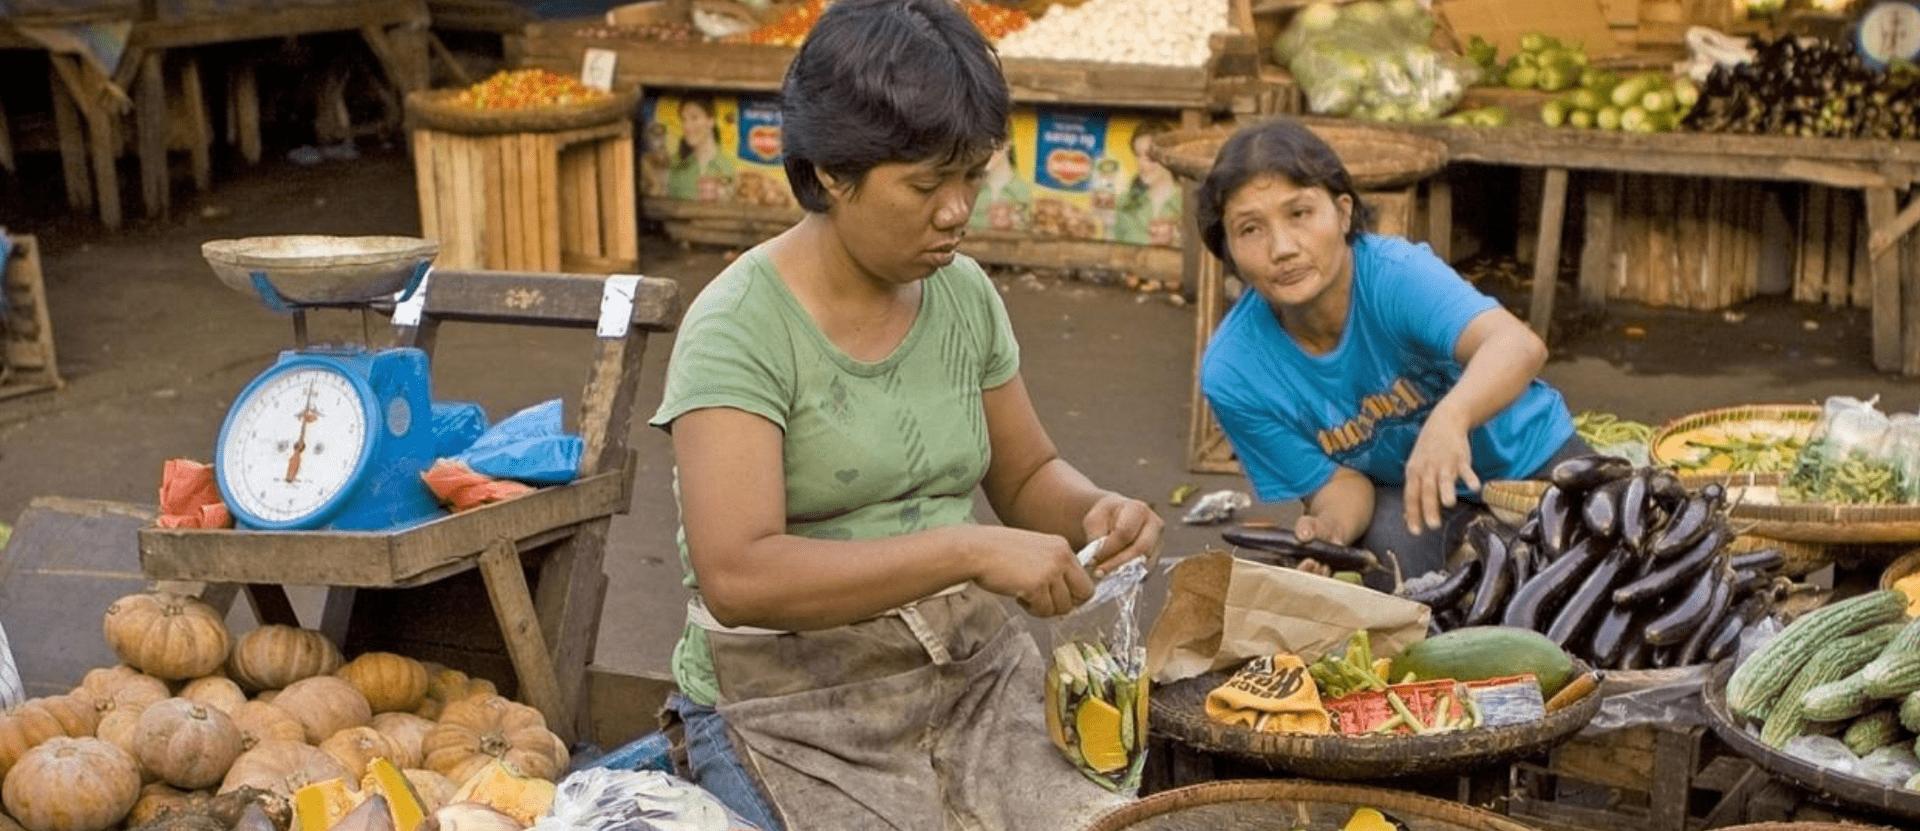 Two women in food market